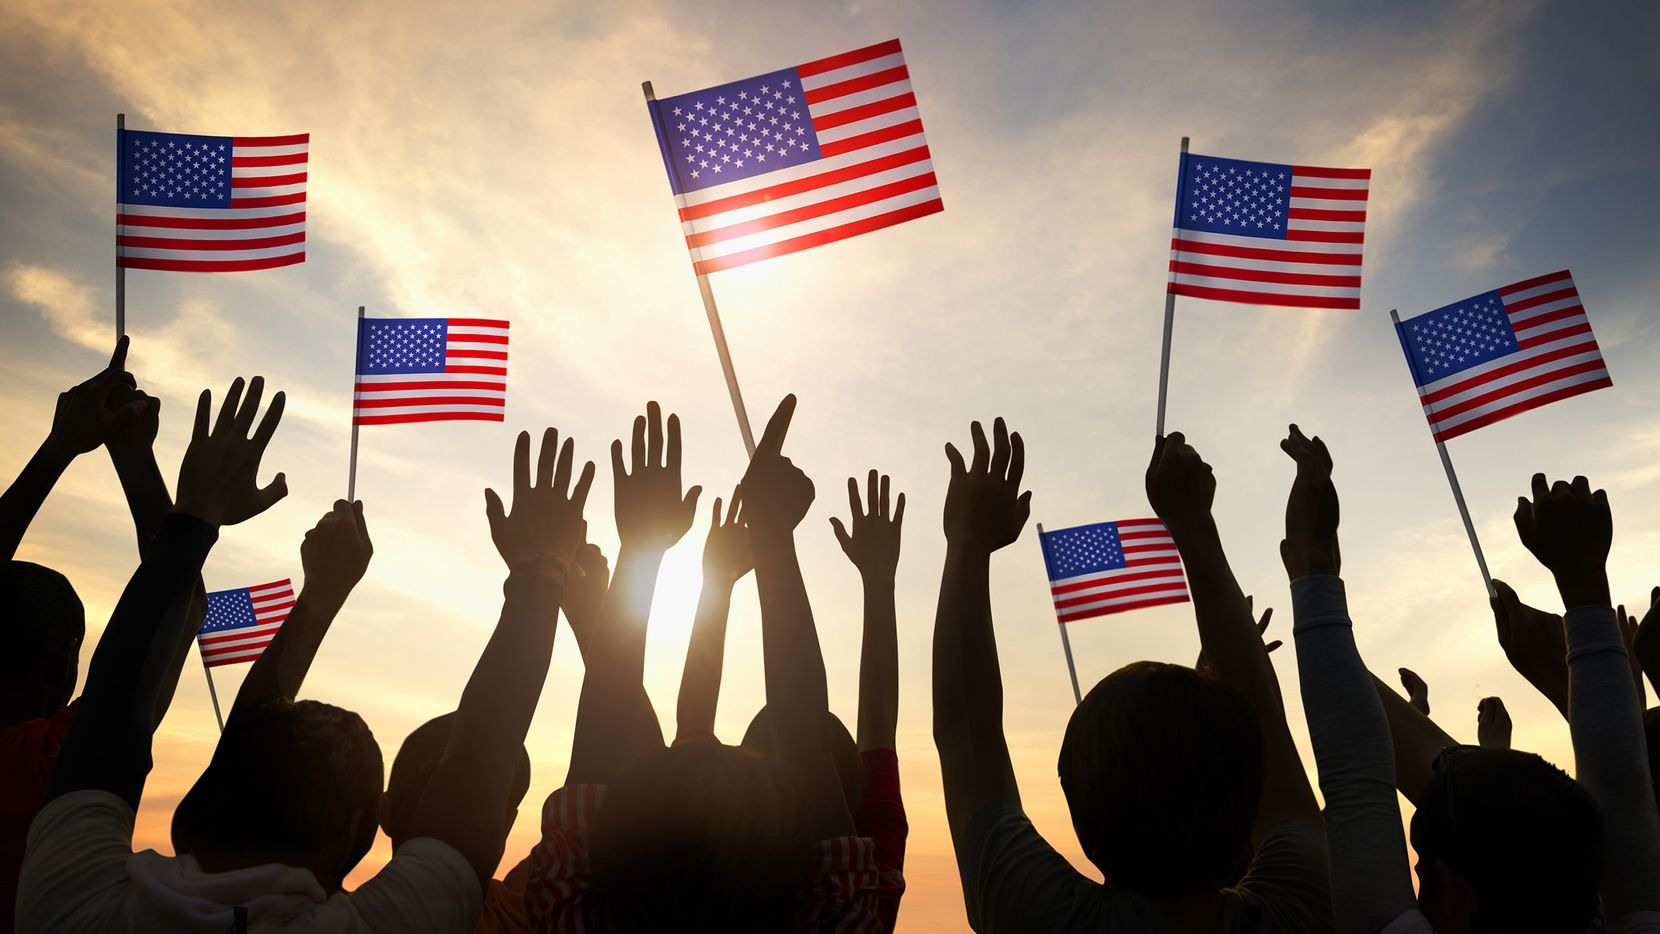 What do you know about the Fourth of July? Test your knowledge here.